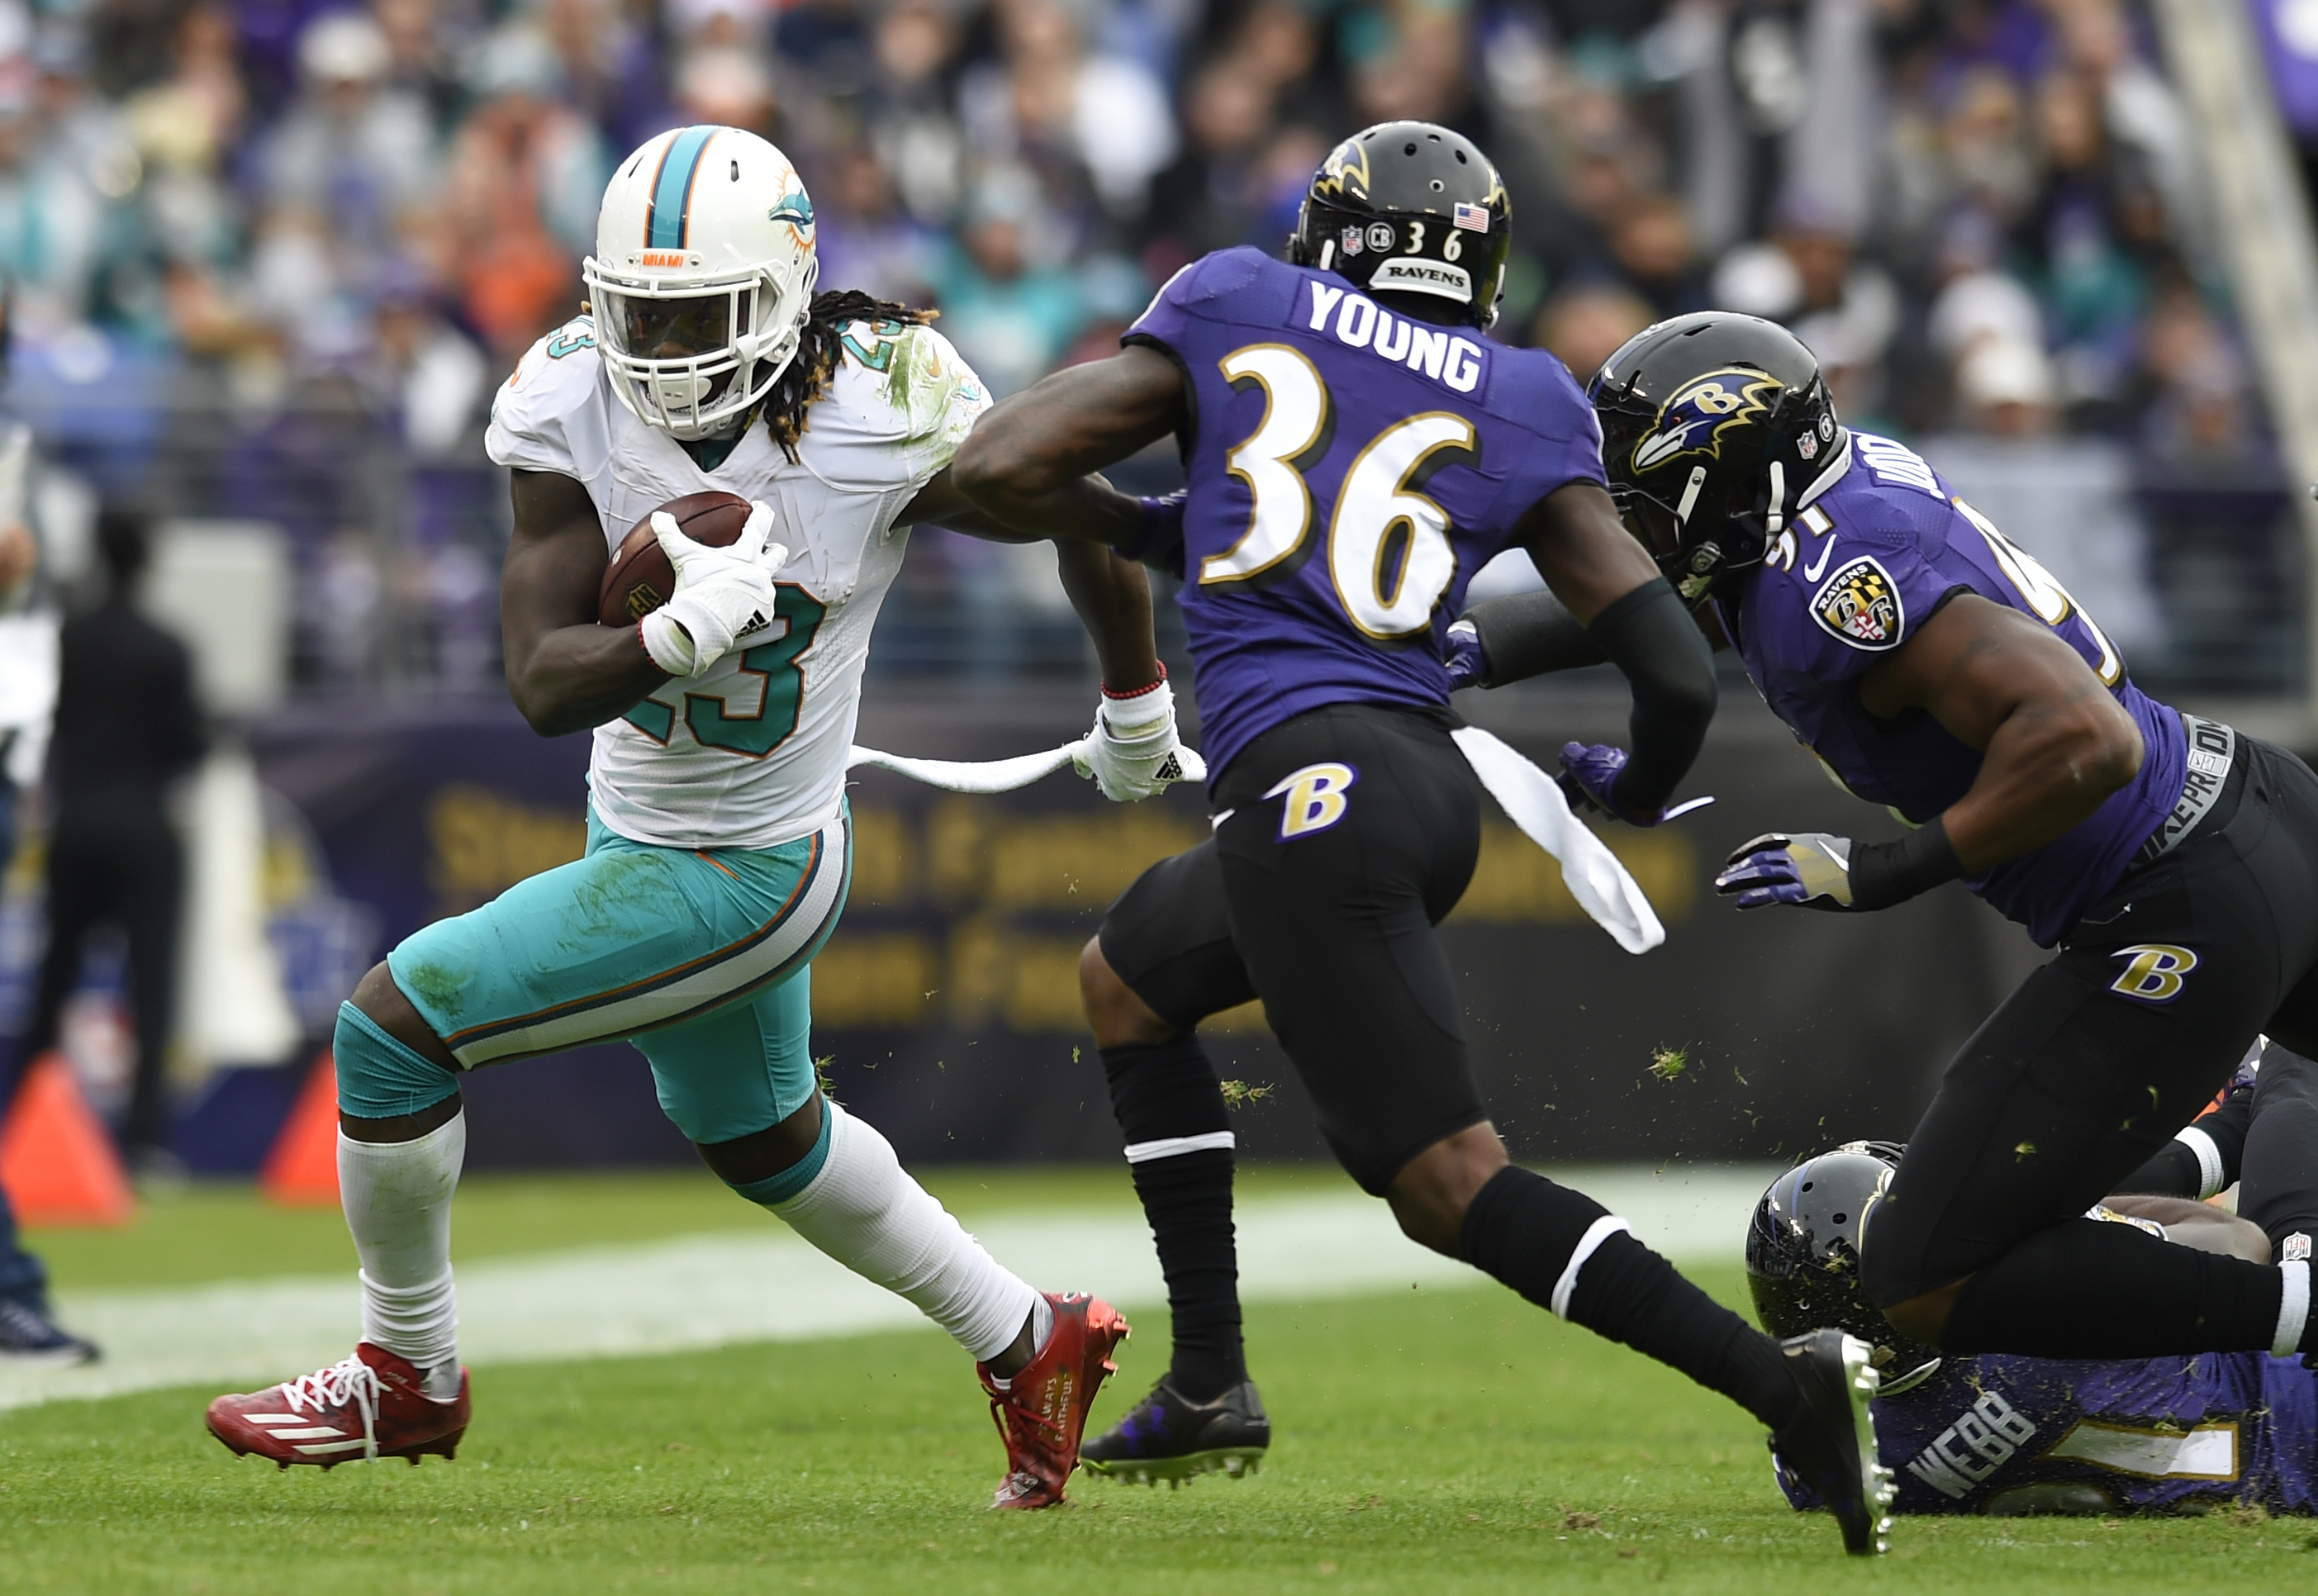 FILE - In this Dec. 4, 2016, file photo, Miami Dolphins running back Jay Ajayi, left, rushes past Baltimore Ravens cornerback Tavon Young (36) and linebacker Matt Judon during an NFL football game in Baltimore. Ajayi has had three 200-yard games this seas